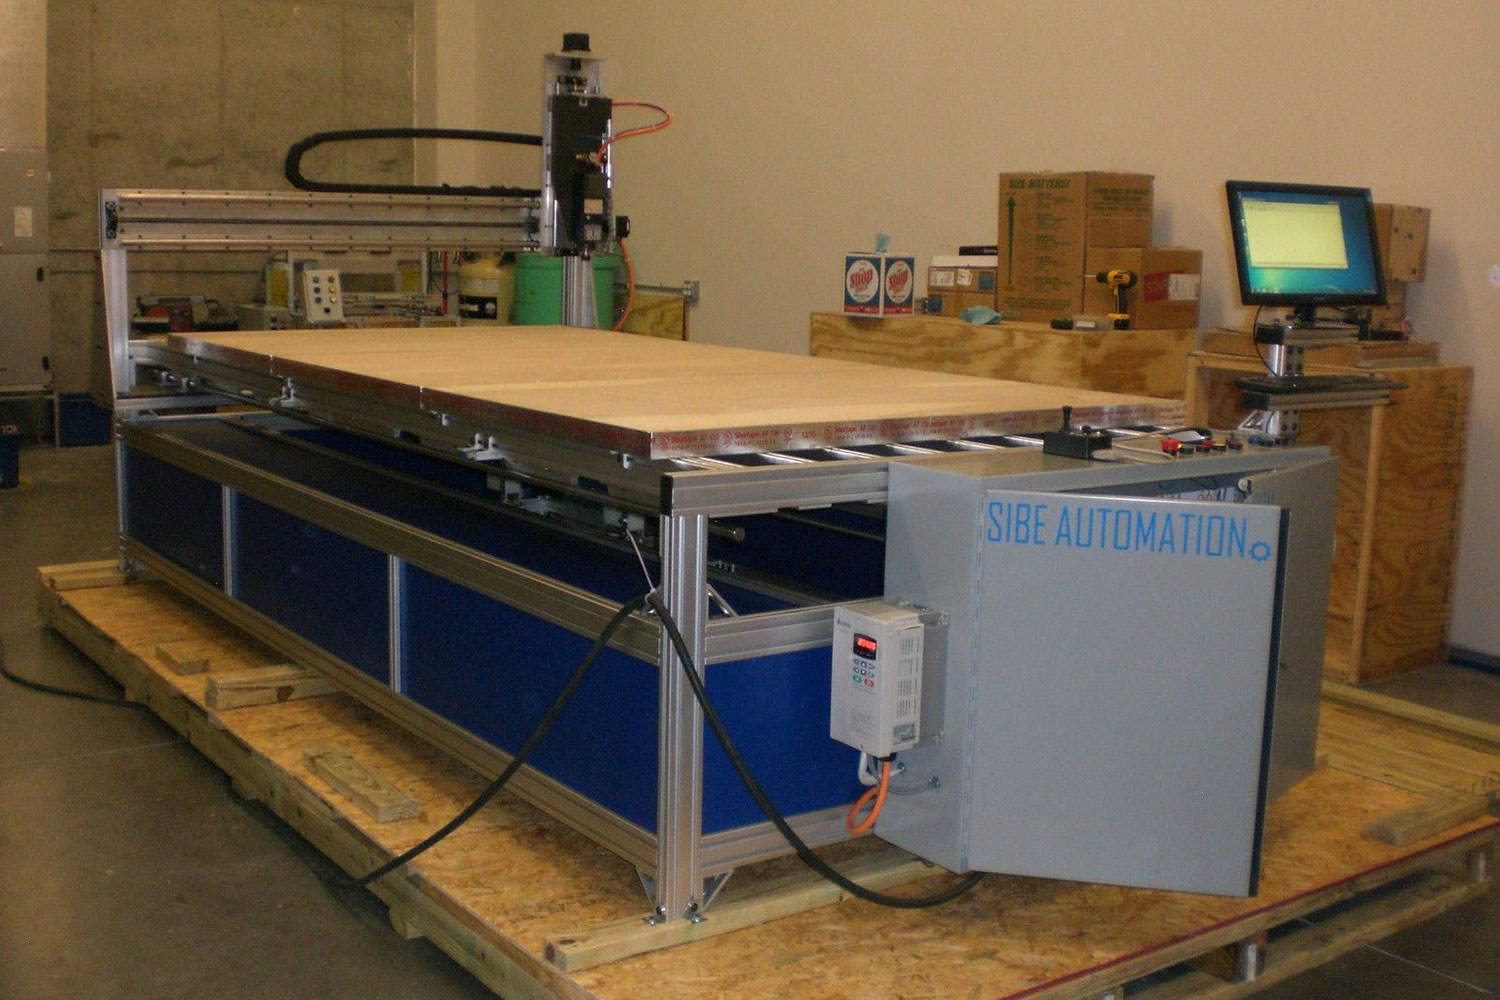 3 Axis CNC Routers - Sibe Automation